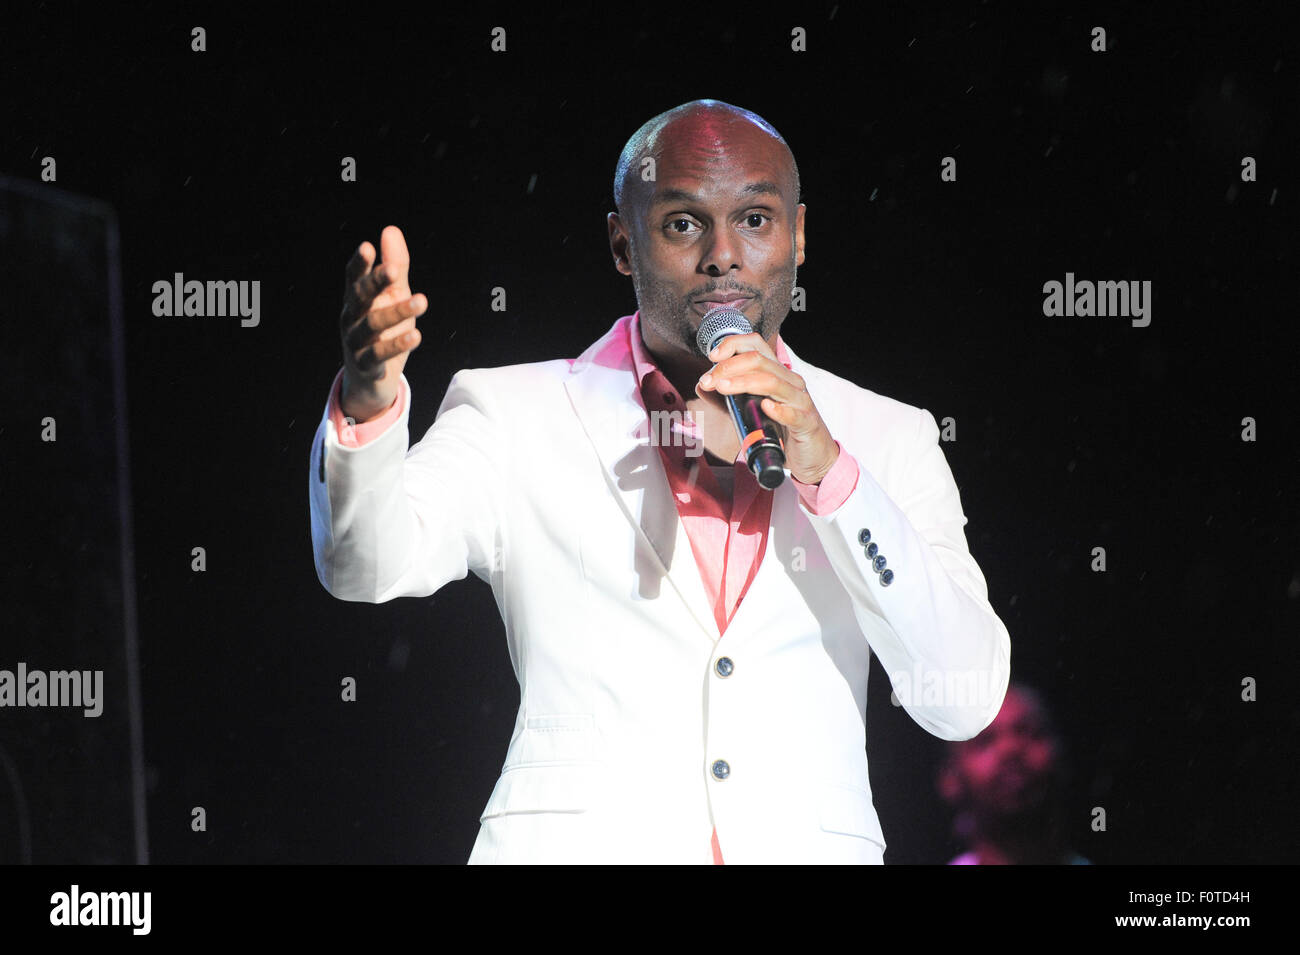 Philadelphia, Pennsylvania, USA. 20th Aug, 2015. R&B singer, KENNY LATTIMORE, performing at the Dell Music Center's - Stock Image